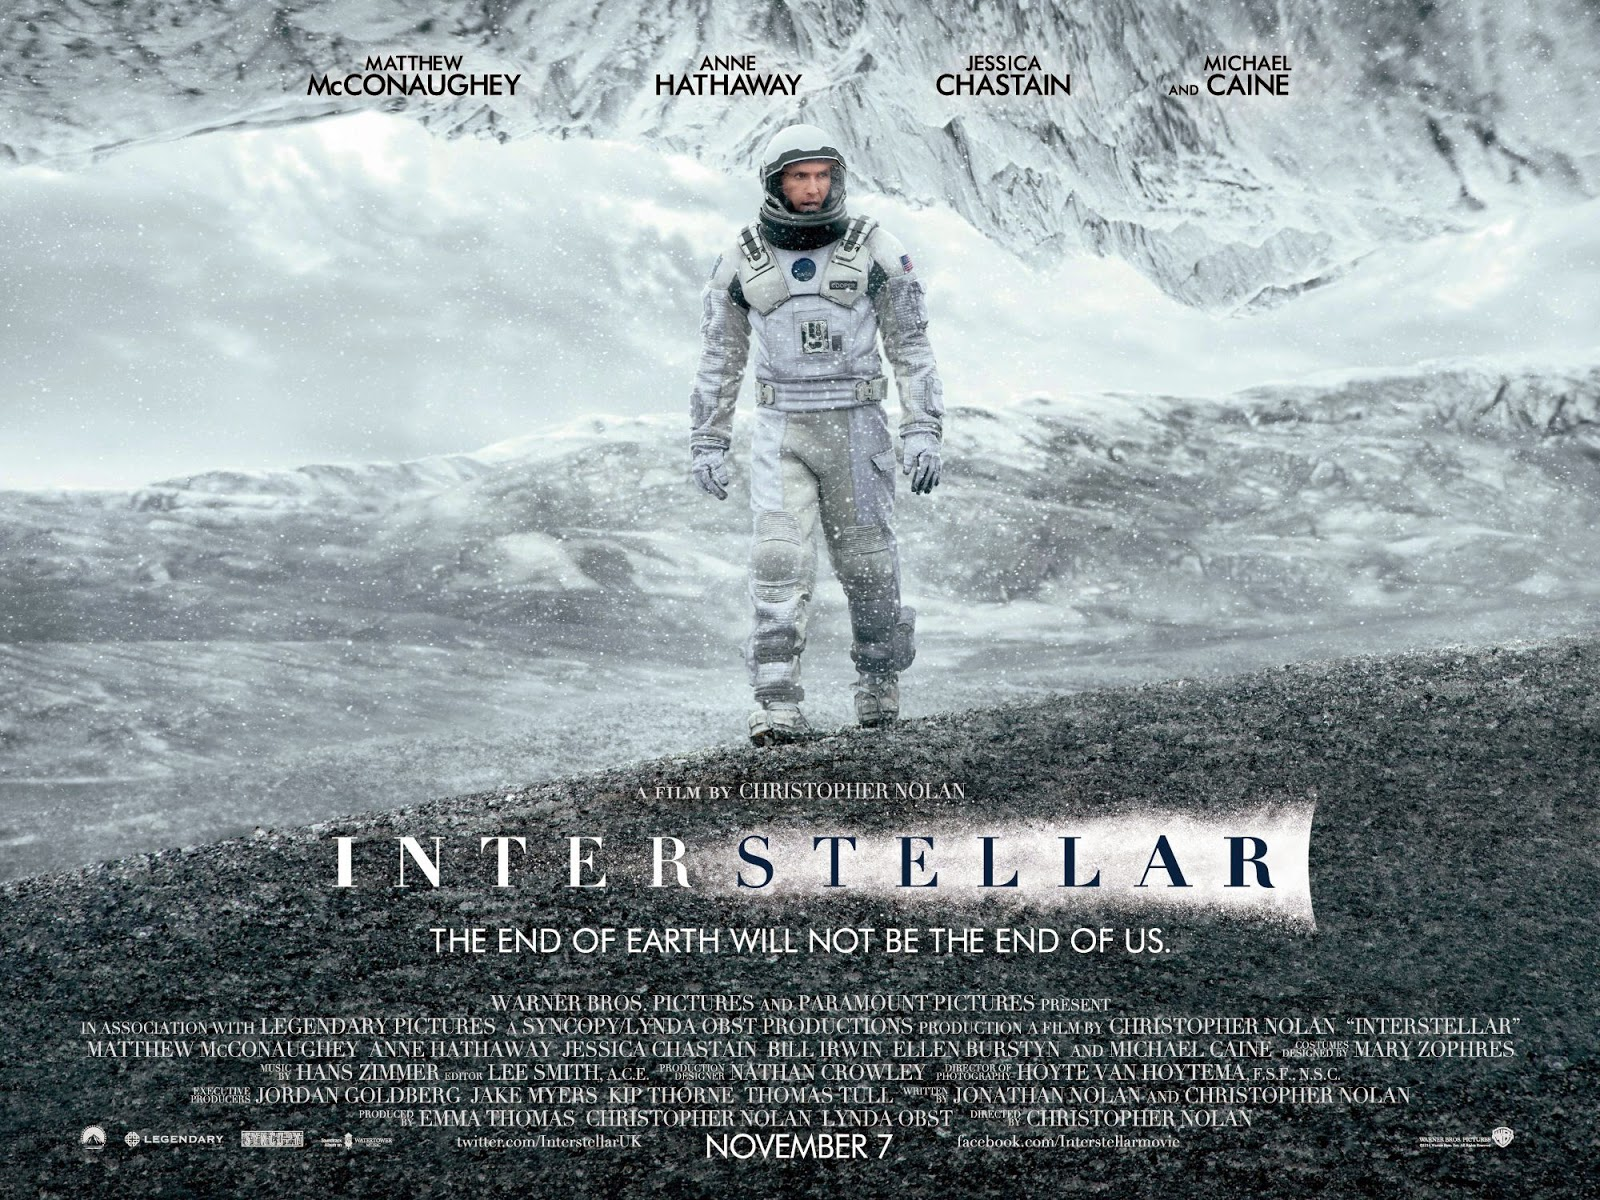 Interstellar, best movies of 2014, Matthew McConaughey, Christopher Nolan, space movies, sci-fi